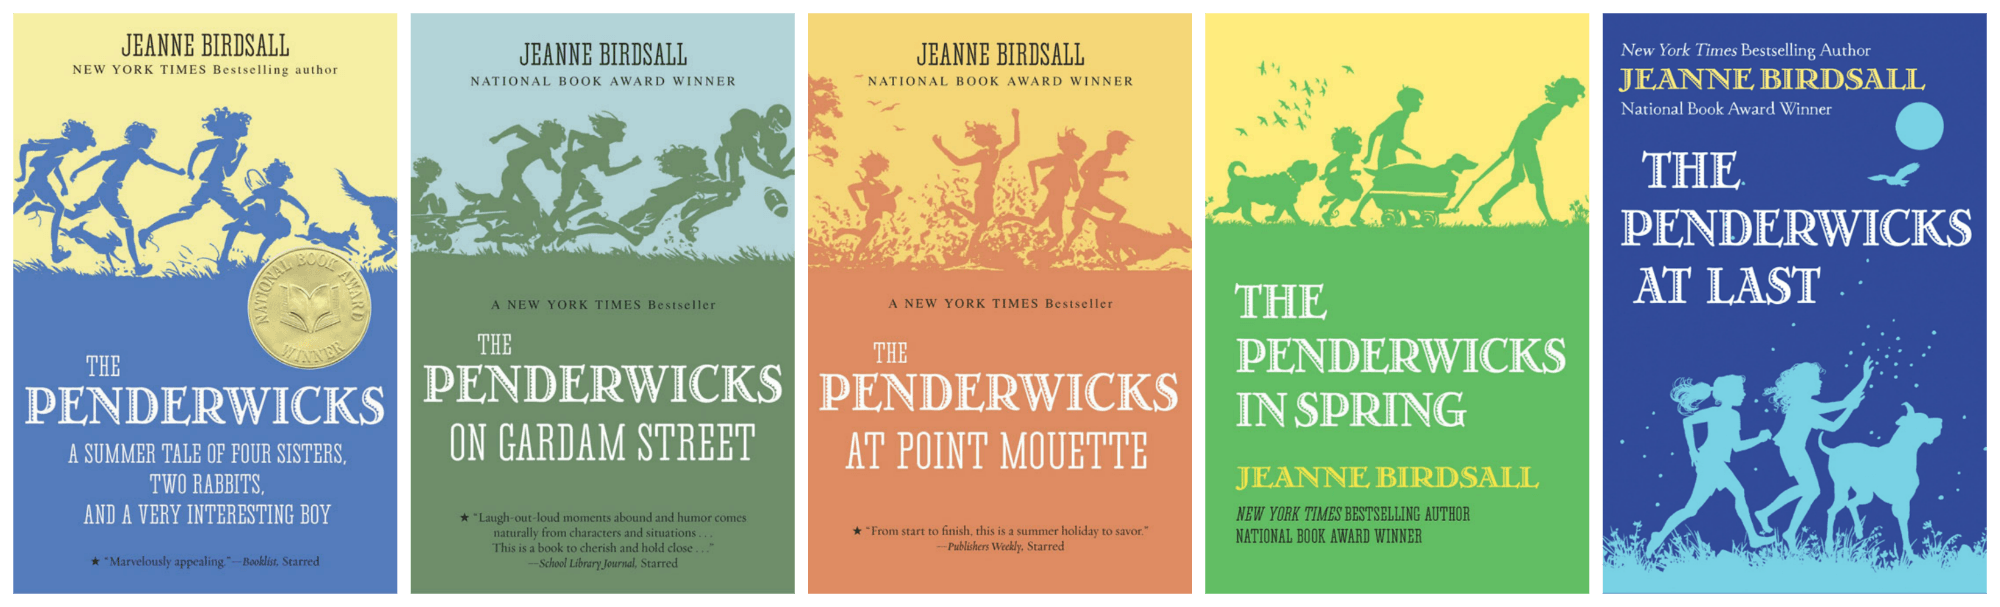 RAR #100: Jeanne Birdsall, The Penderwicks, and over 4 Million ...